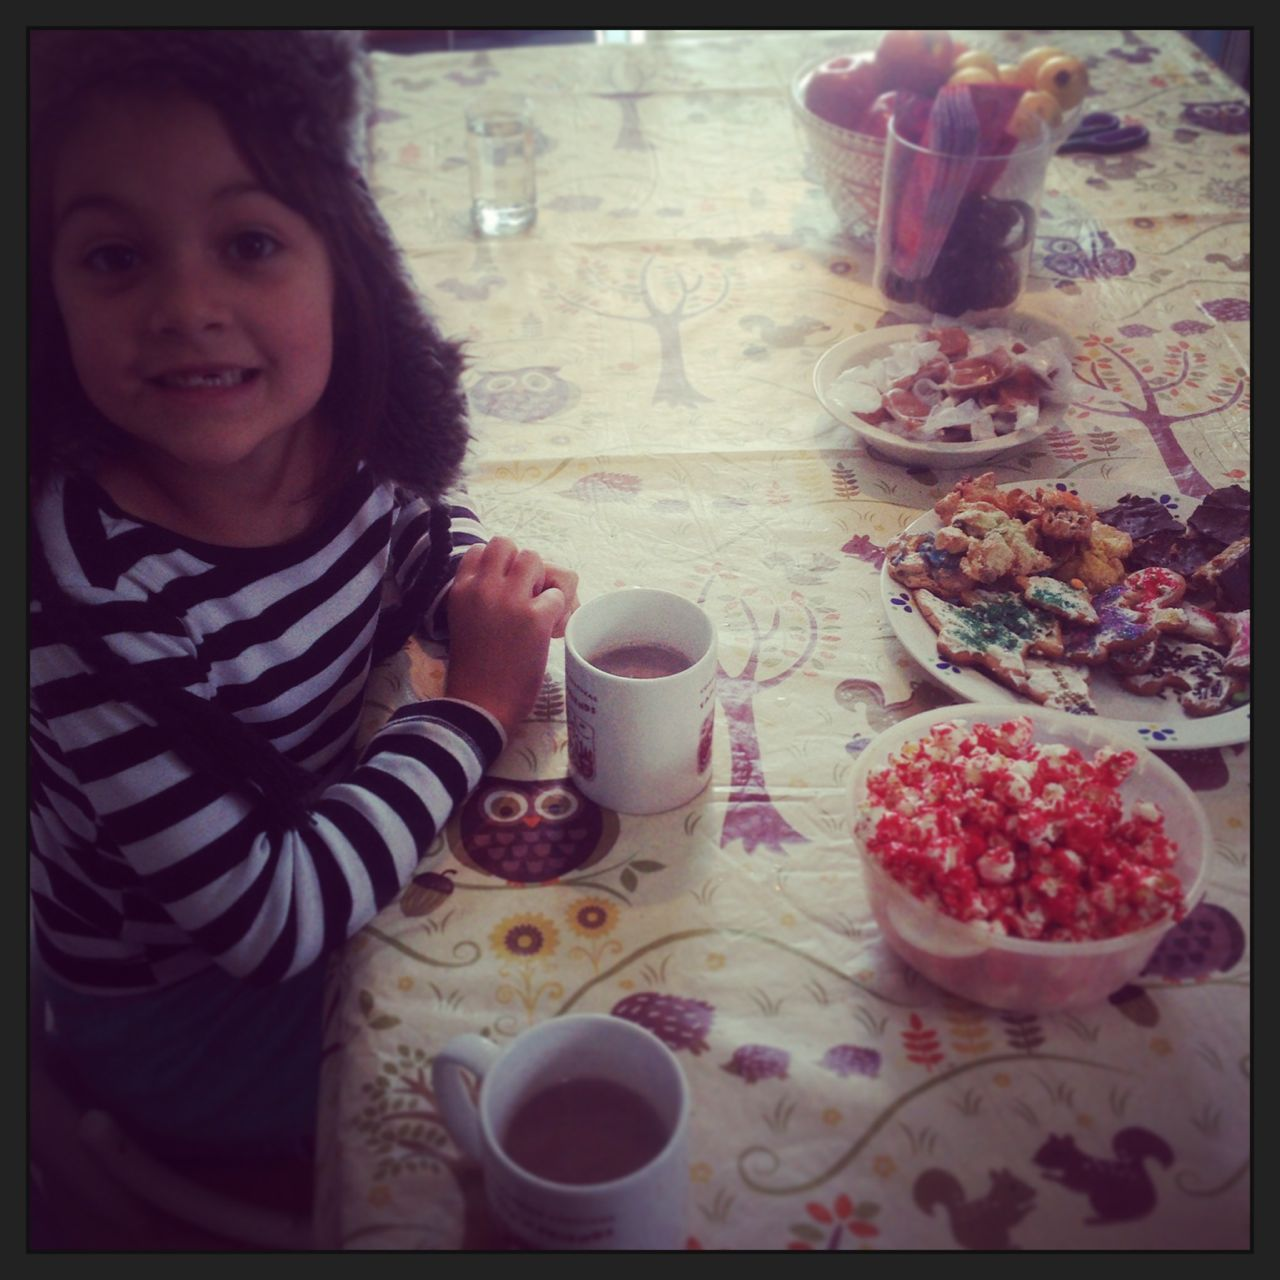 Hot chocolate, freshly-baked yummies and happy kidlets..